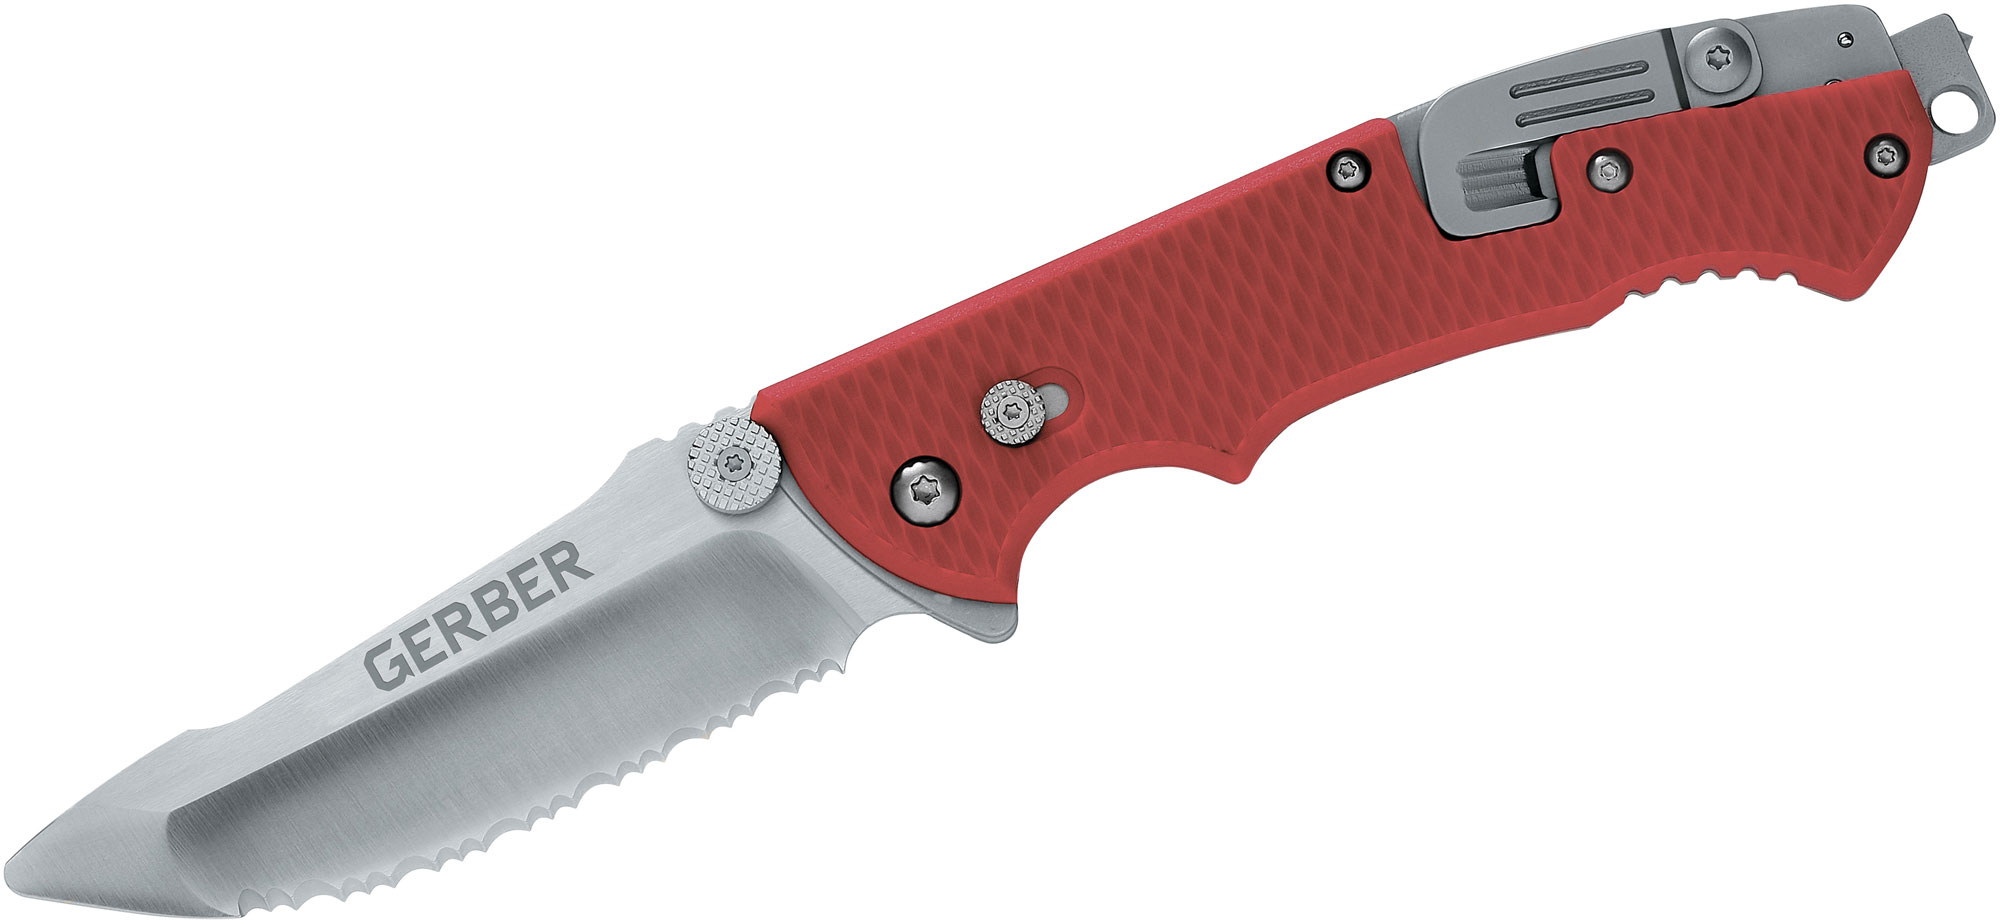 Buy Gerber Hinderer Rescue at KnifeCenter